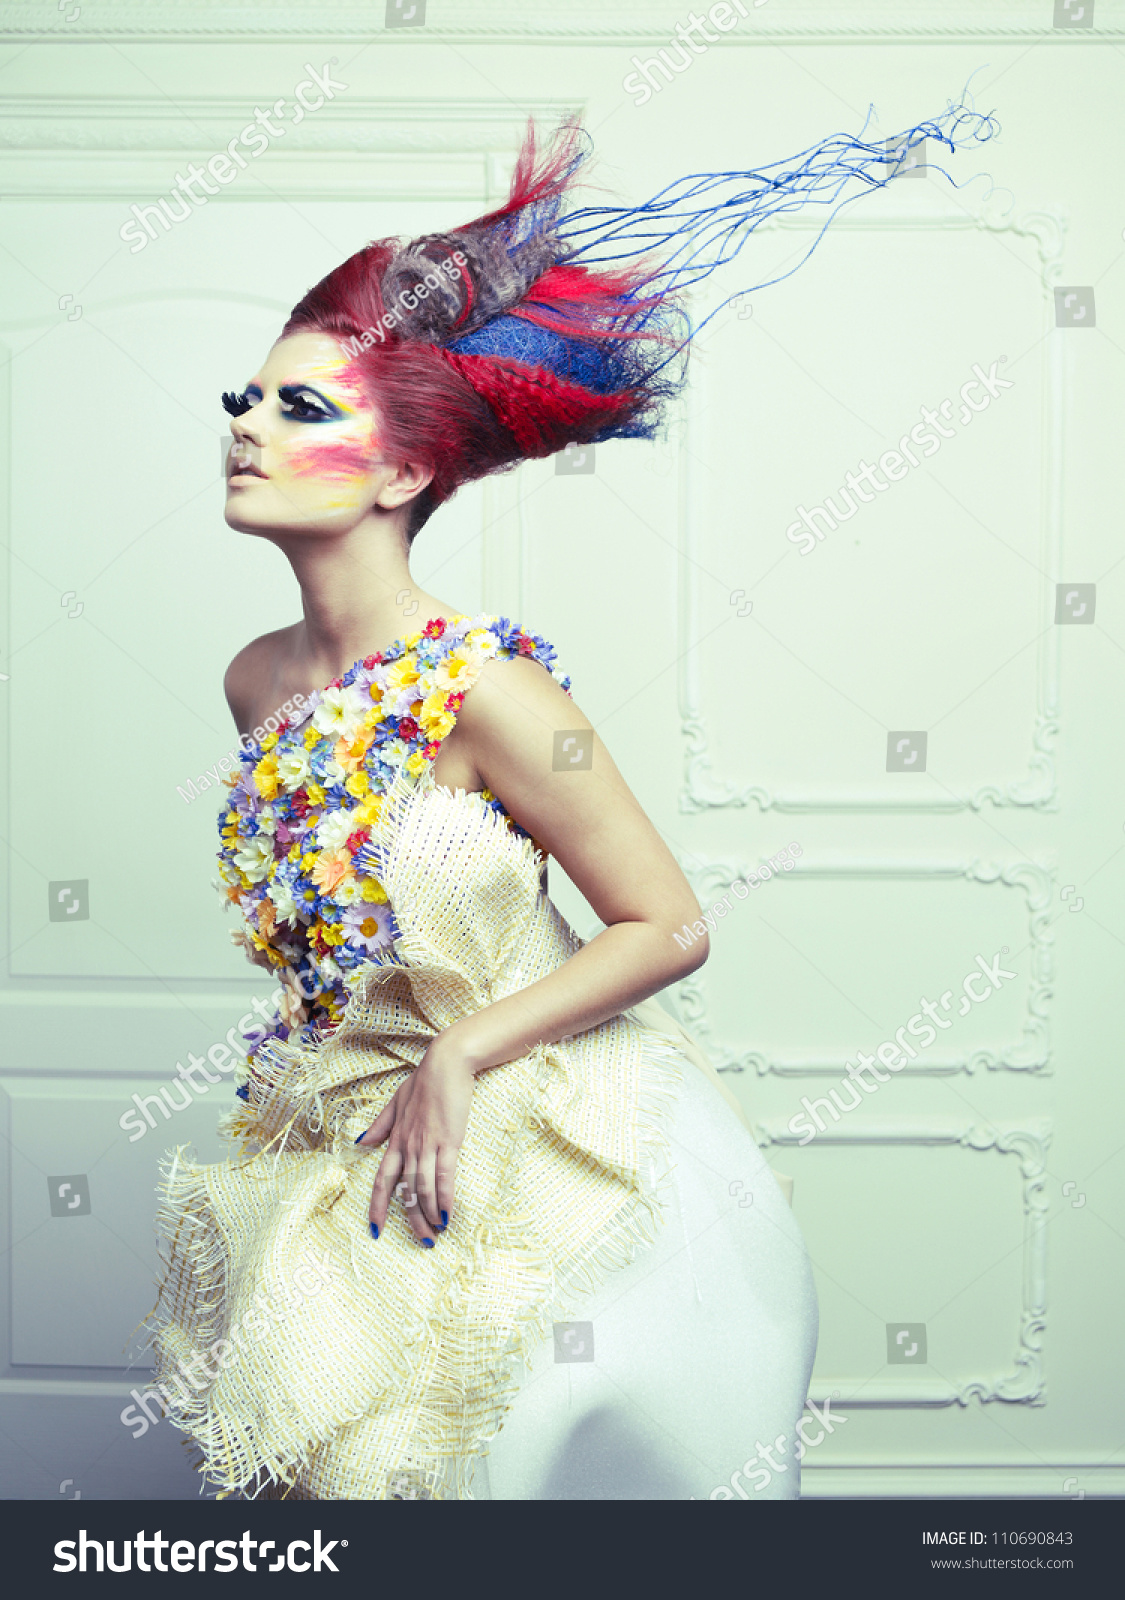 Lady With AvantGarde Hair And Bright MakeUp Stock Photo